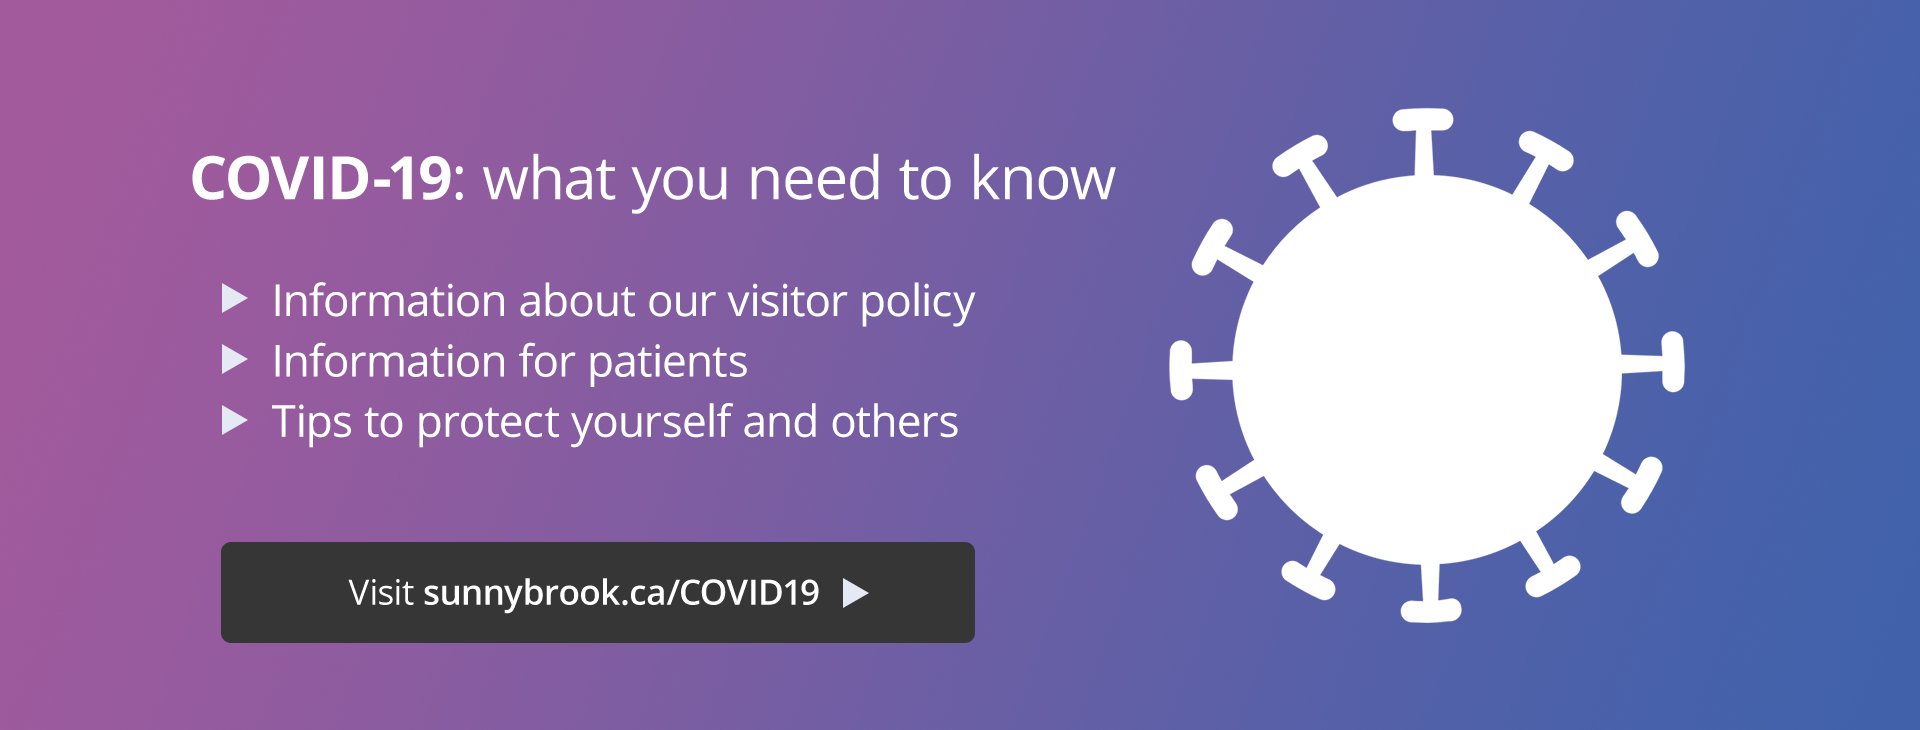 What you need to know about COVID-19: Information about our visitor policy Tips to protect yourself and others. Visit sunnybrook.ca/COVID19